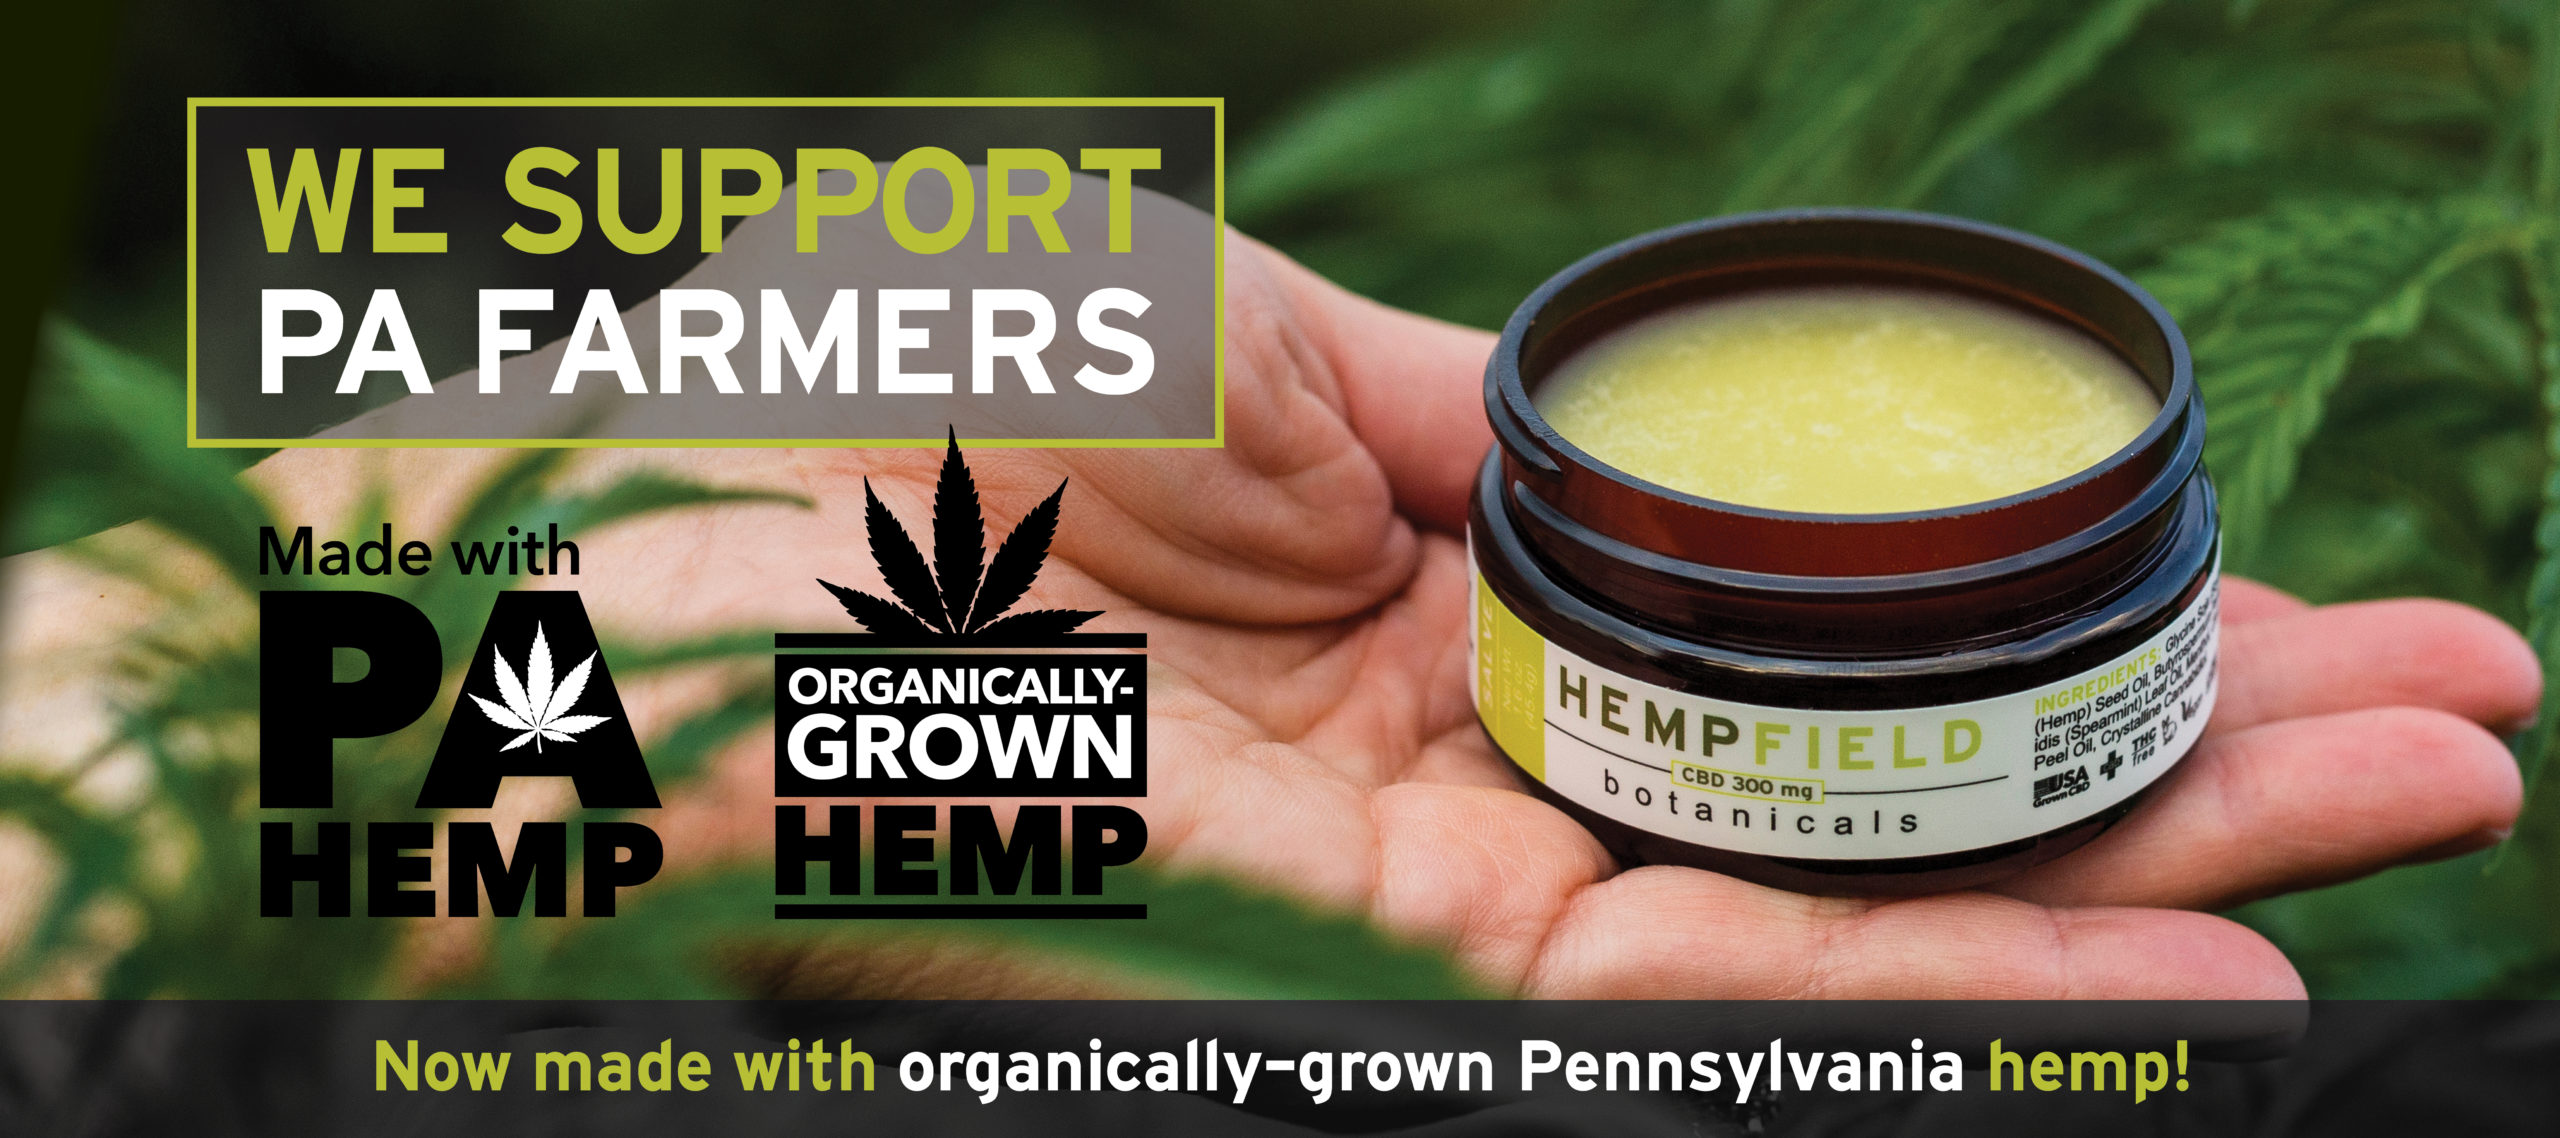 We Support PA Hemp Farmers | Hempfield Botanicals | Organic Hemp | Organic CBD